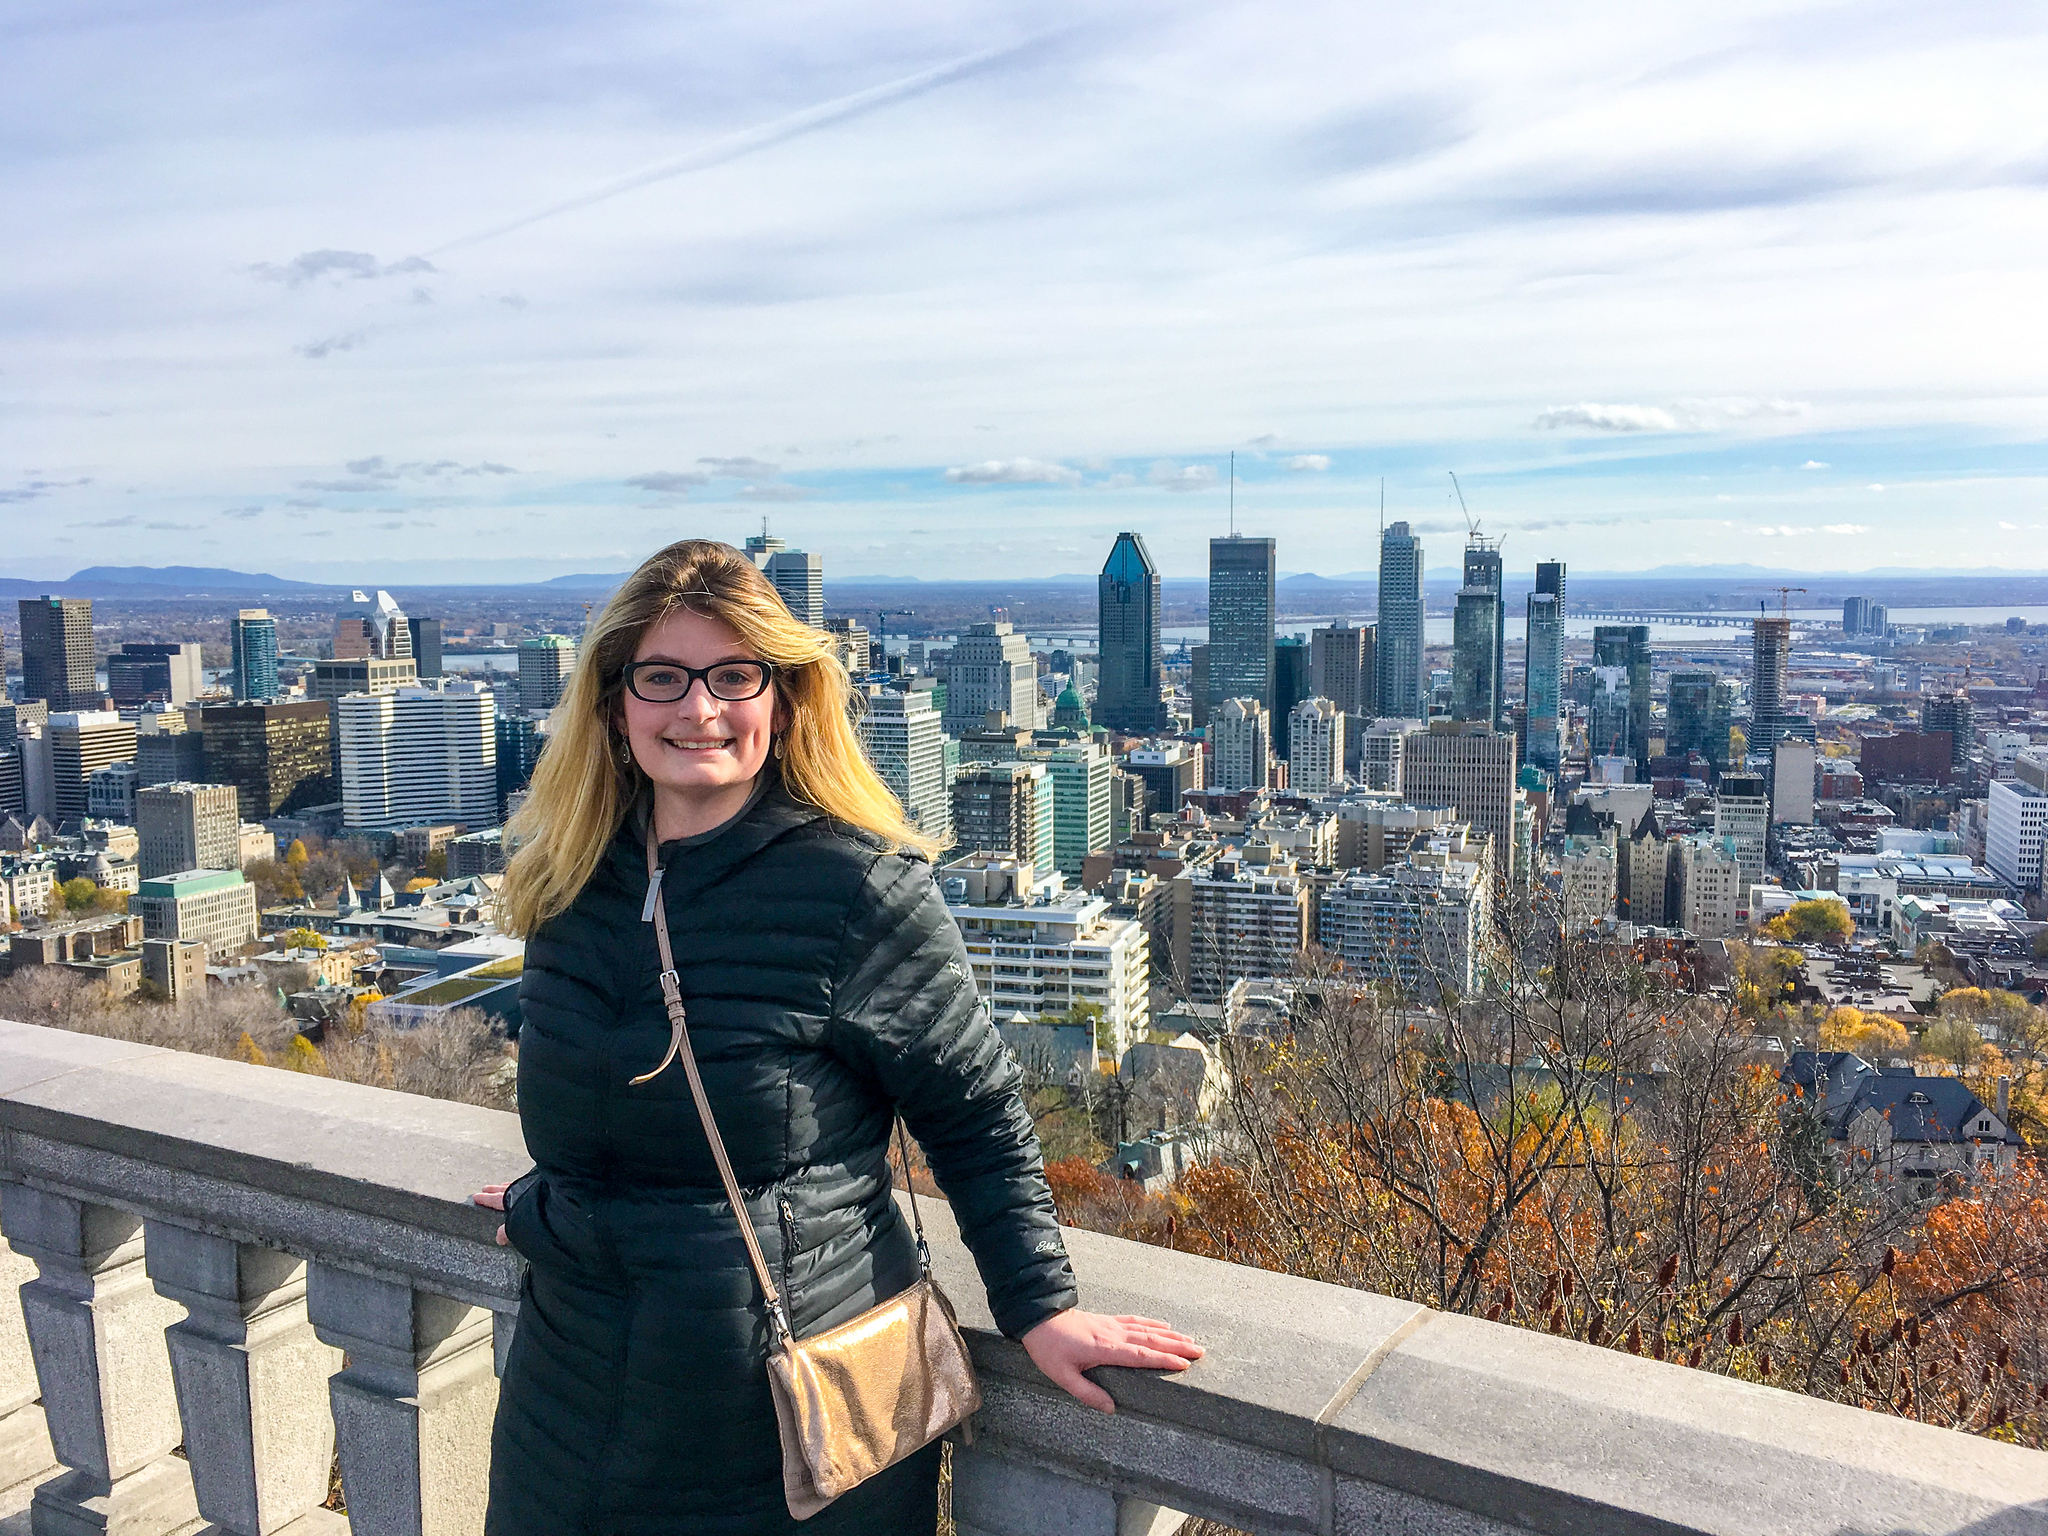 i love blogging. i think of plenty to write about like my trip to montreal